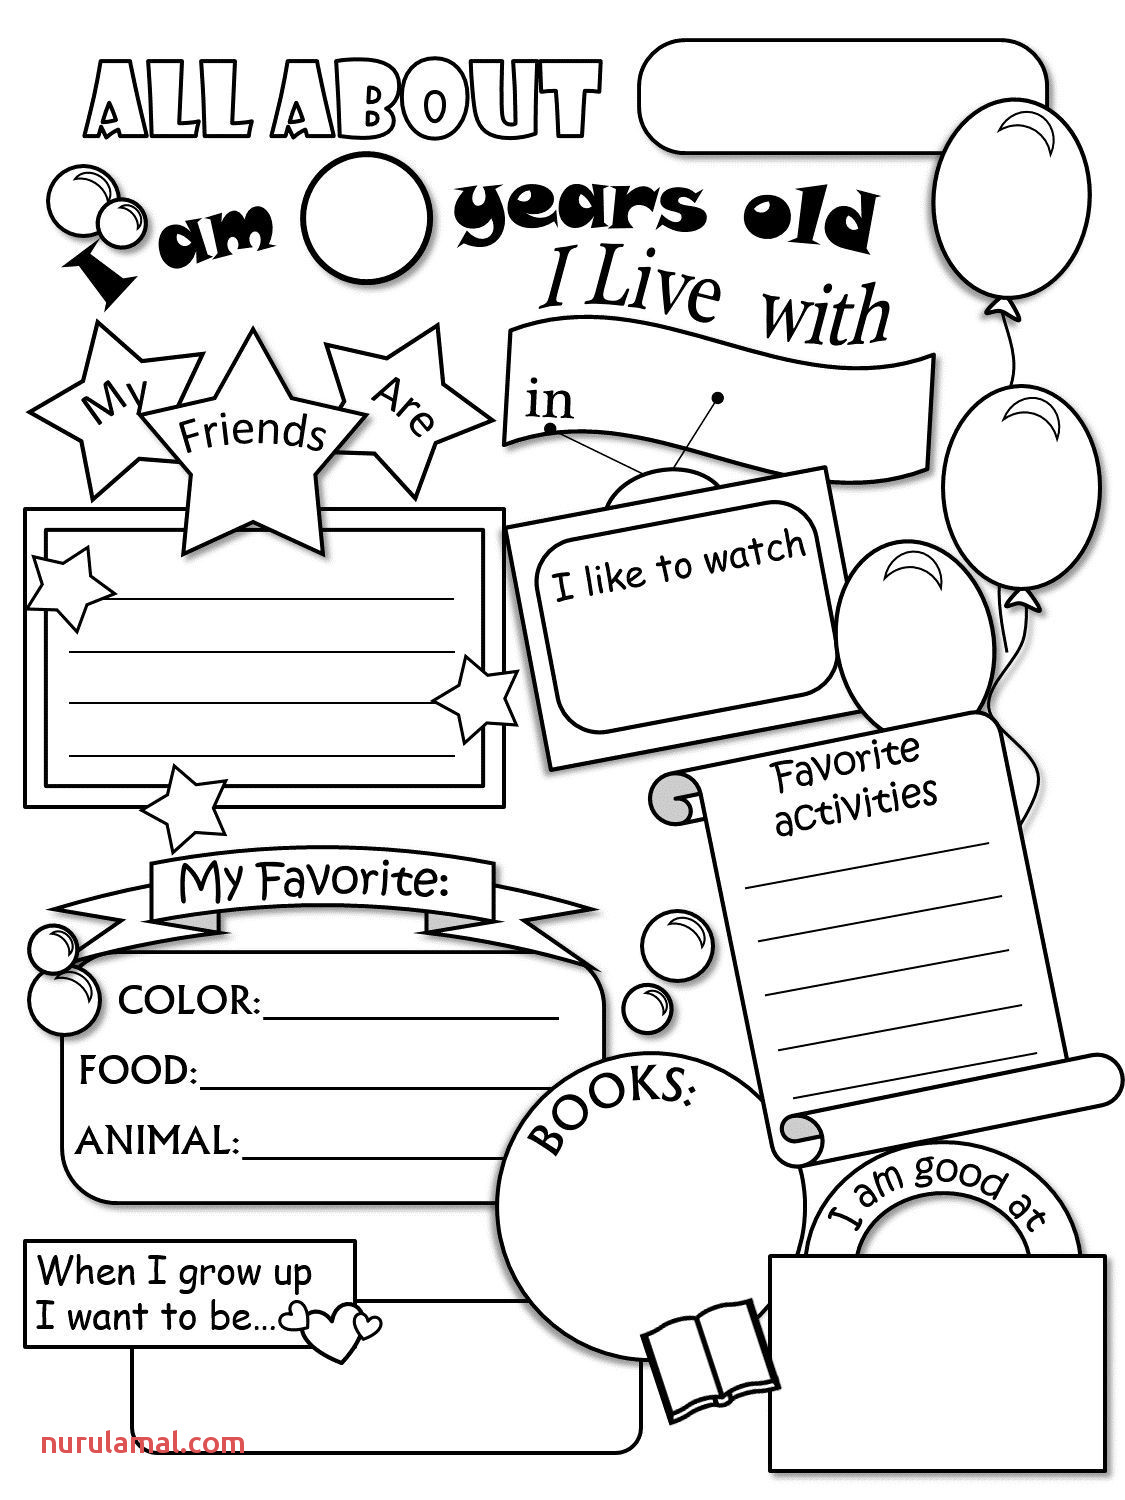 kids worksheet puzzle games feelings and emotions worksheets printable basic math skills website to do problems 9th formula 6th grade expressions pdf ratio free word problem solver is work